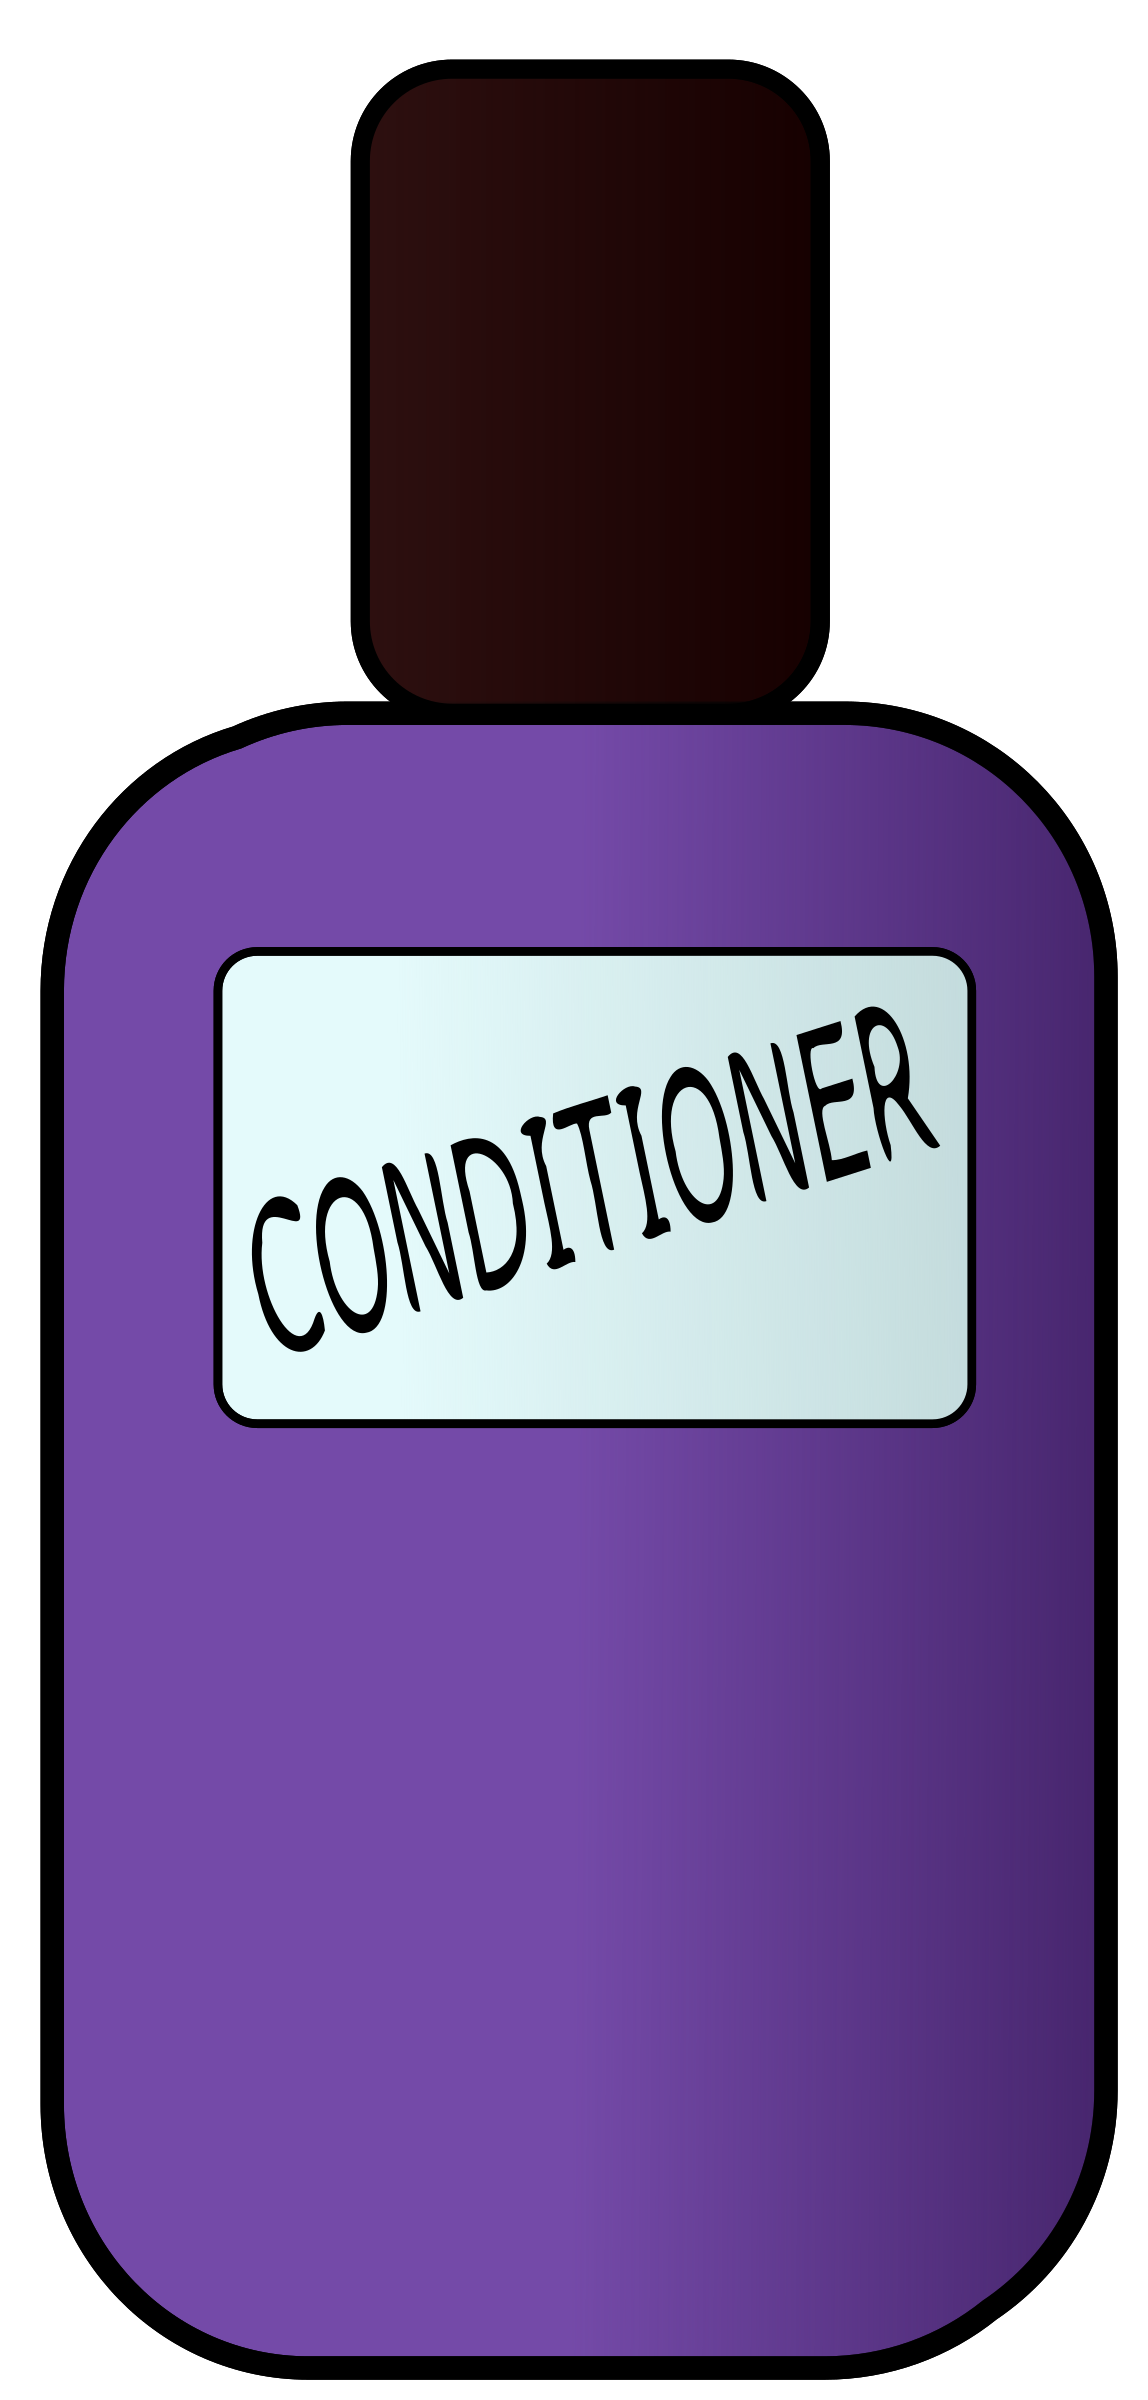 png freeuse Conditioner clipart. Big image png